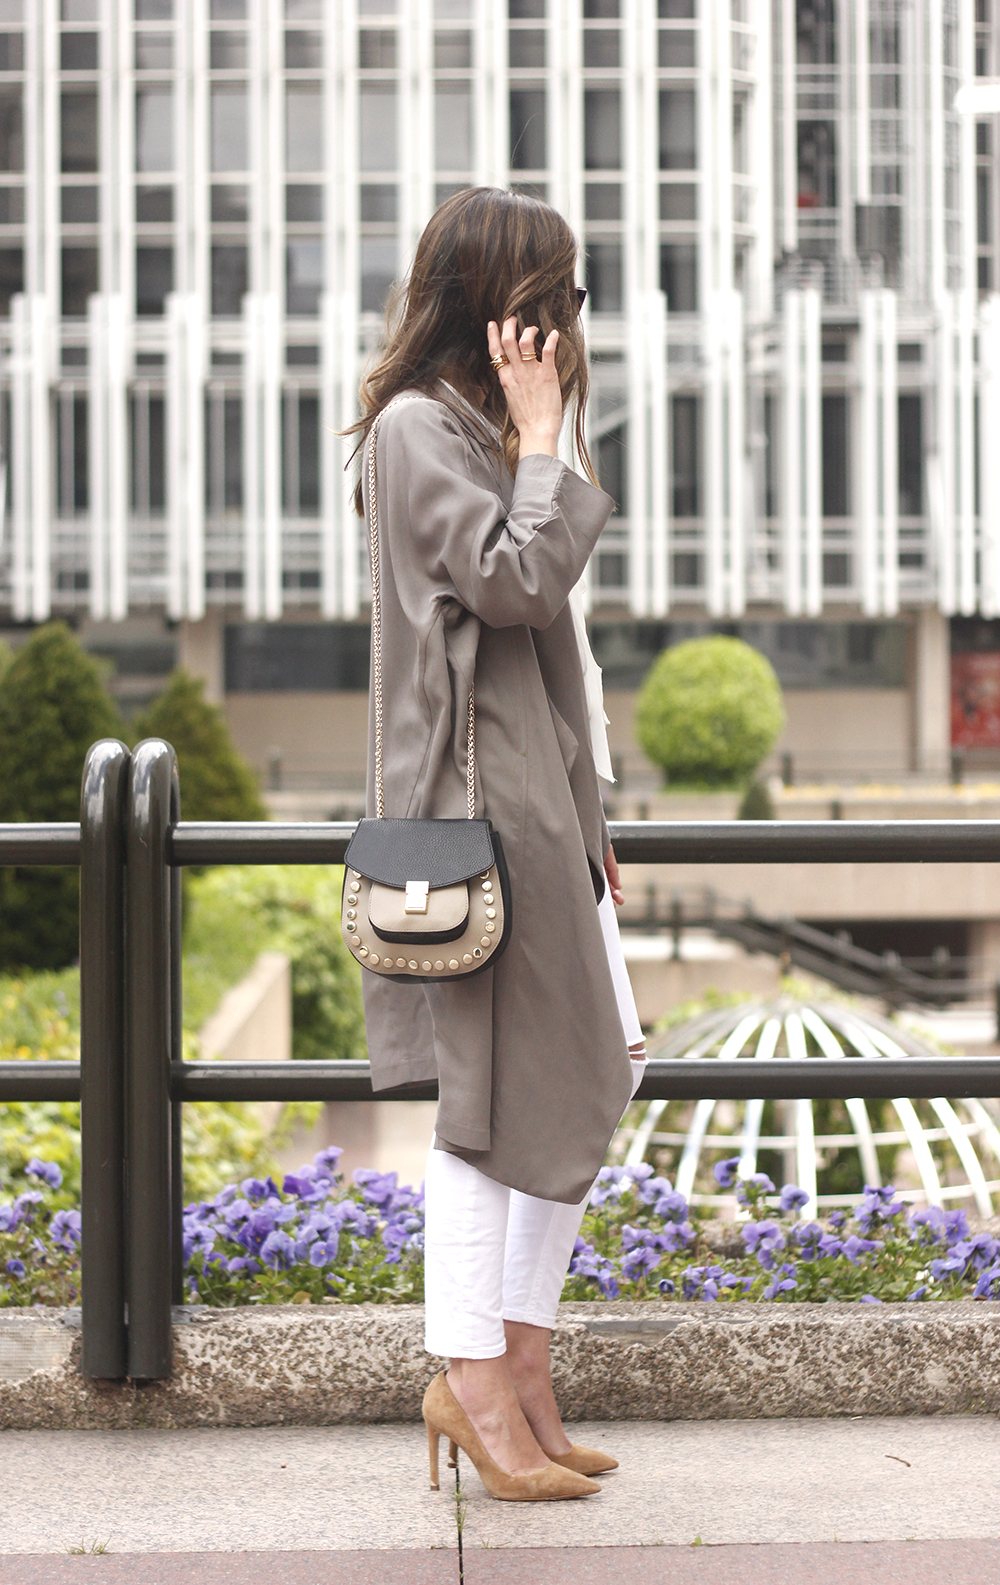 grey and white outfit trench spring streetstyle sunnies nude heels ripped jeans04